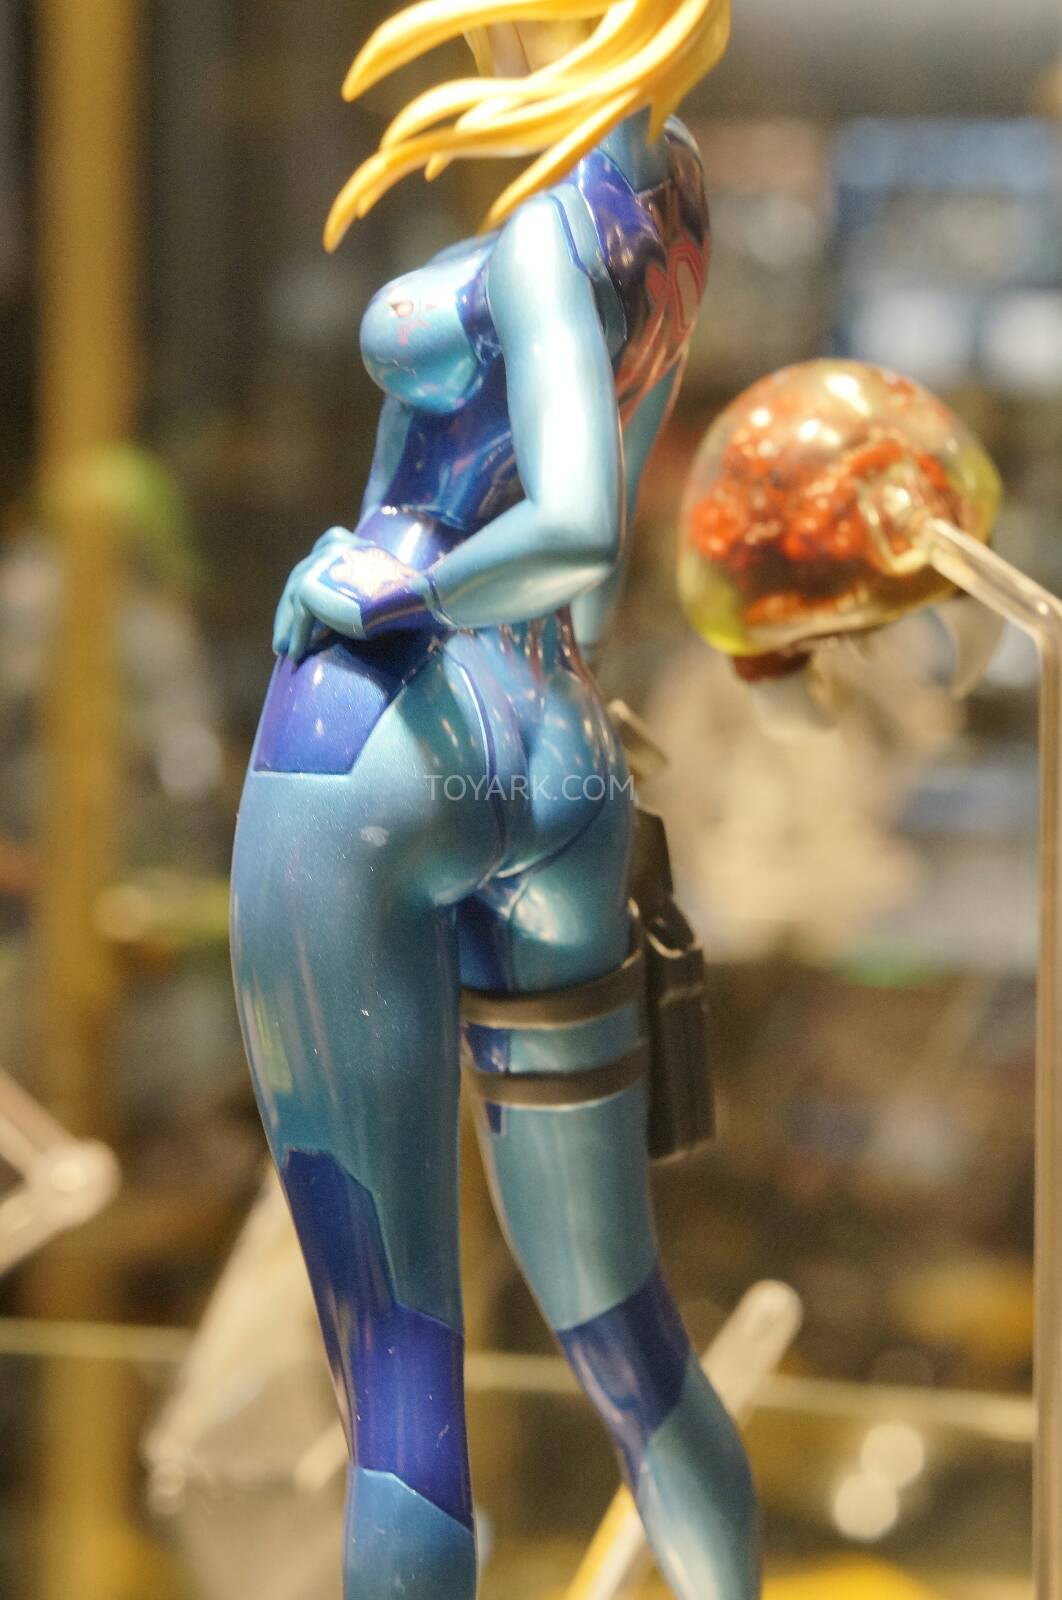 [EVENTO] Toy Fair 2014 - Good Smile Company / Max Factory / Phat Company / FREEing Toy-Fair-2014-Good-Smile-and-Max-Factory-Display-051